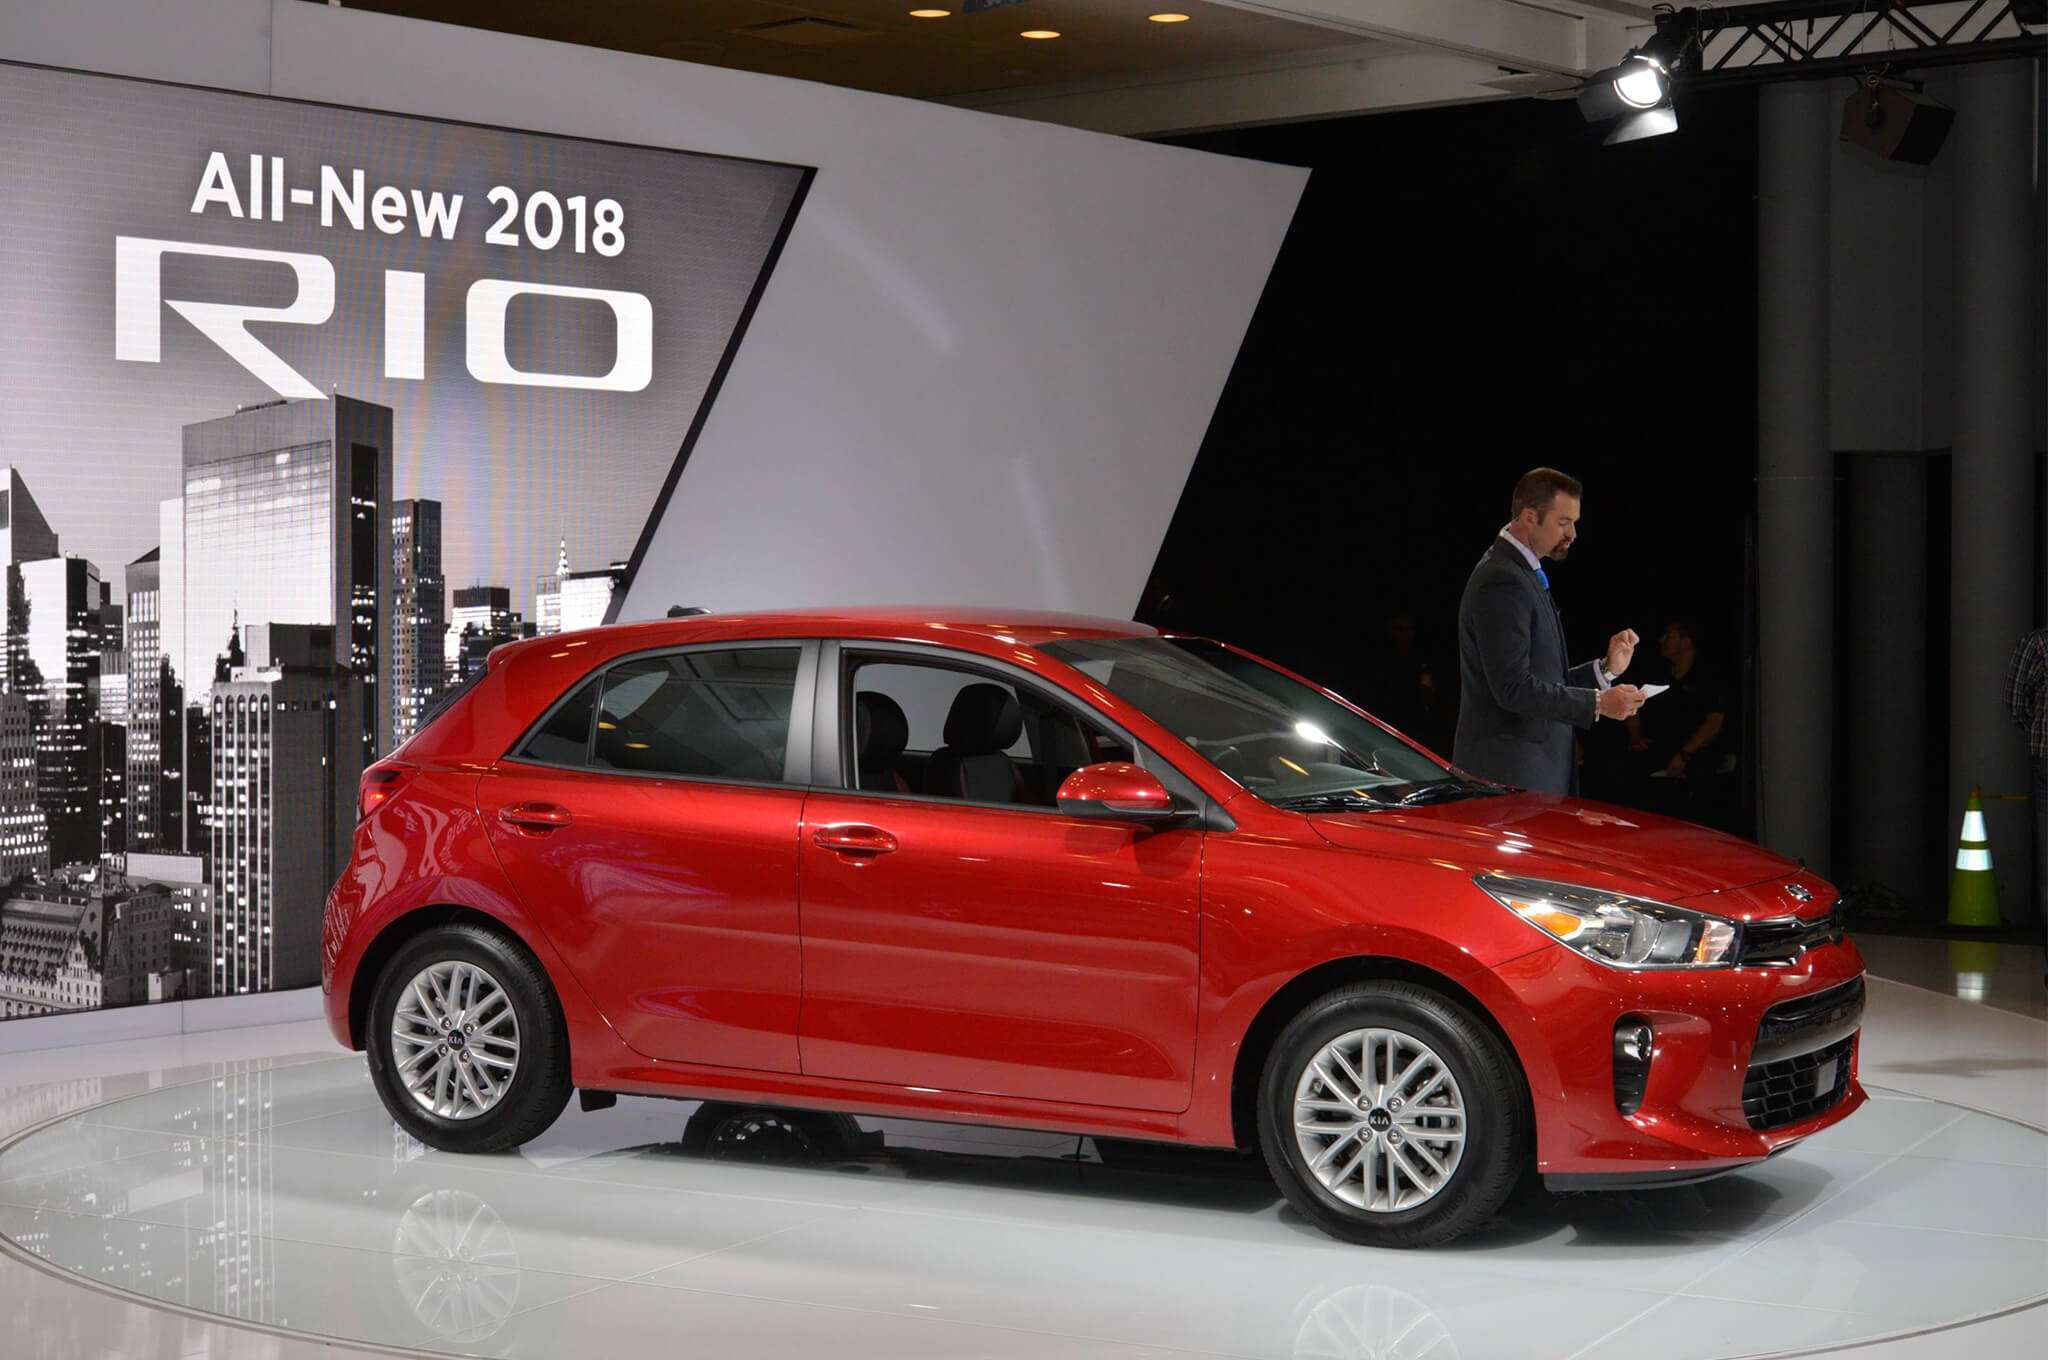 73 New 2020 All Kia Rio Spesification with 2020 All Kia Rio